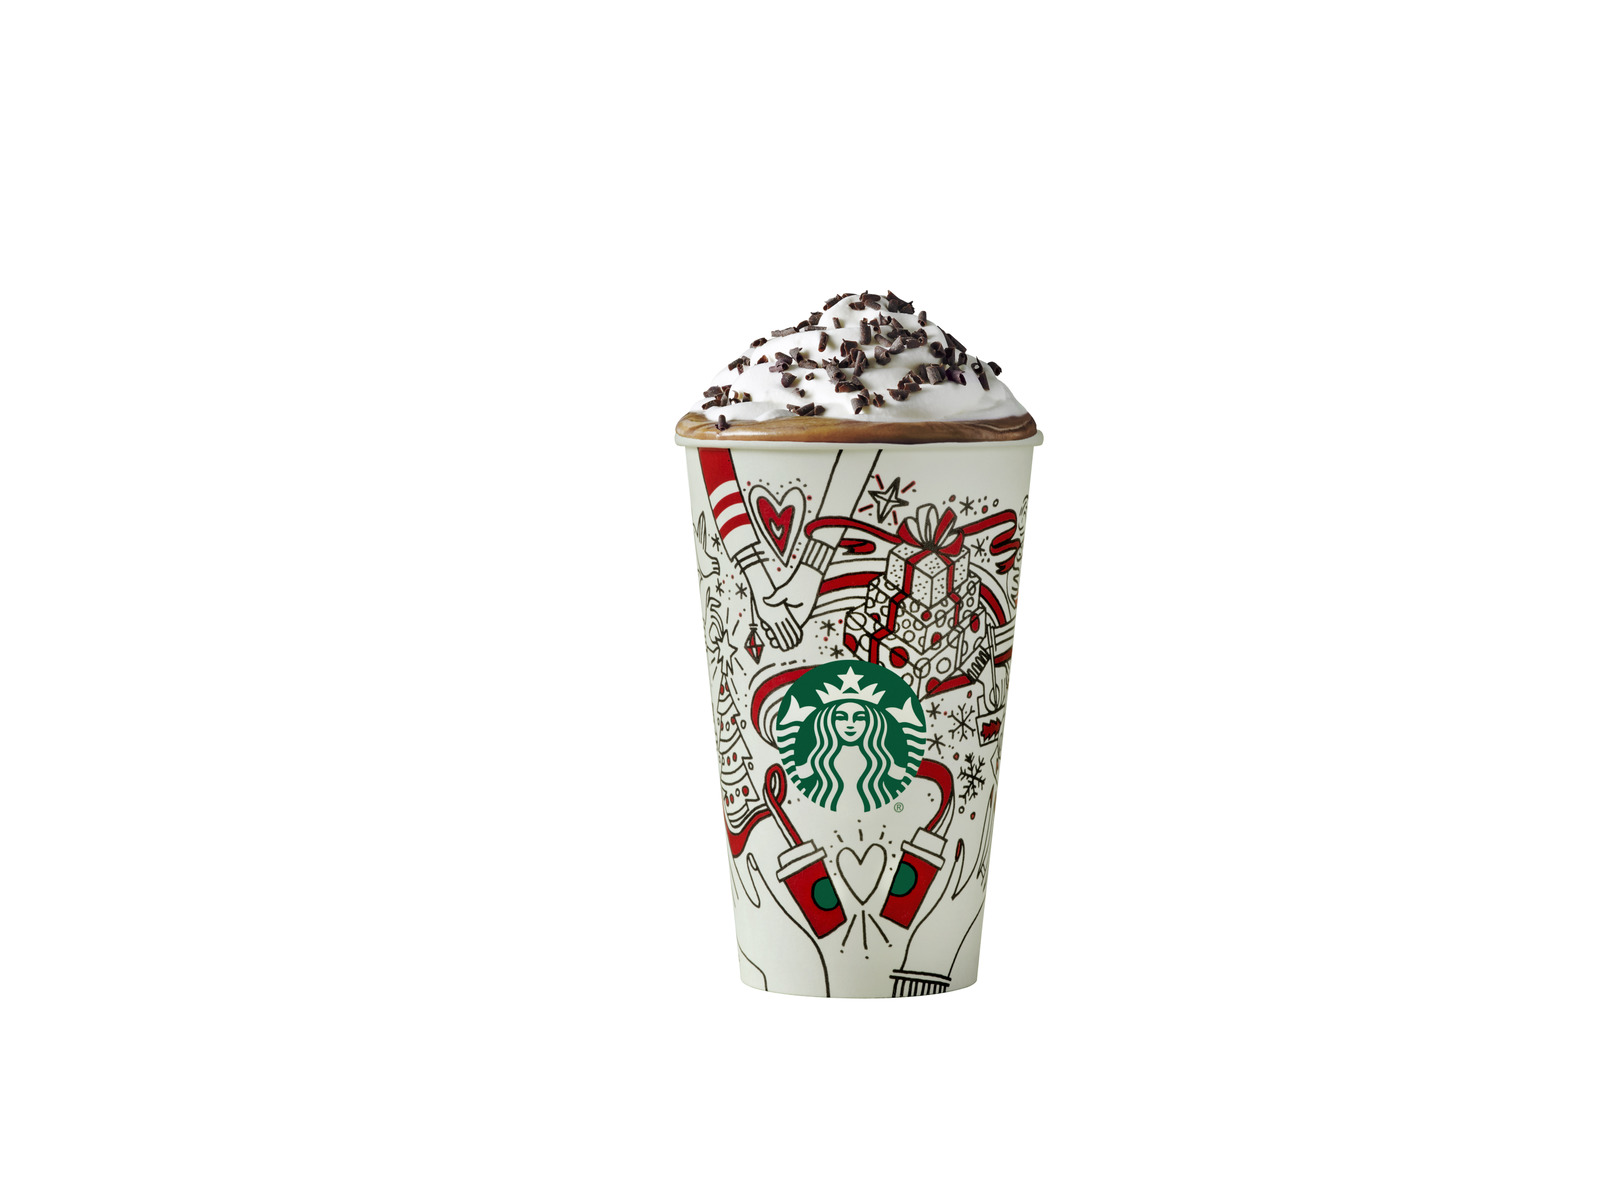 Peppermint mocha latte in a Starbucks red cup